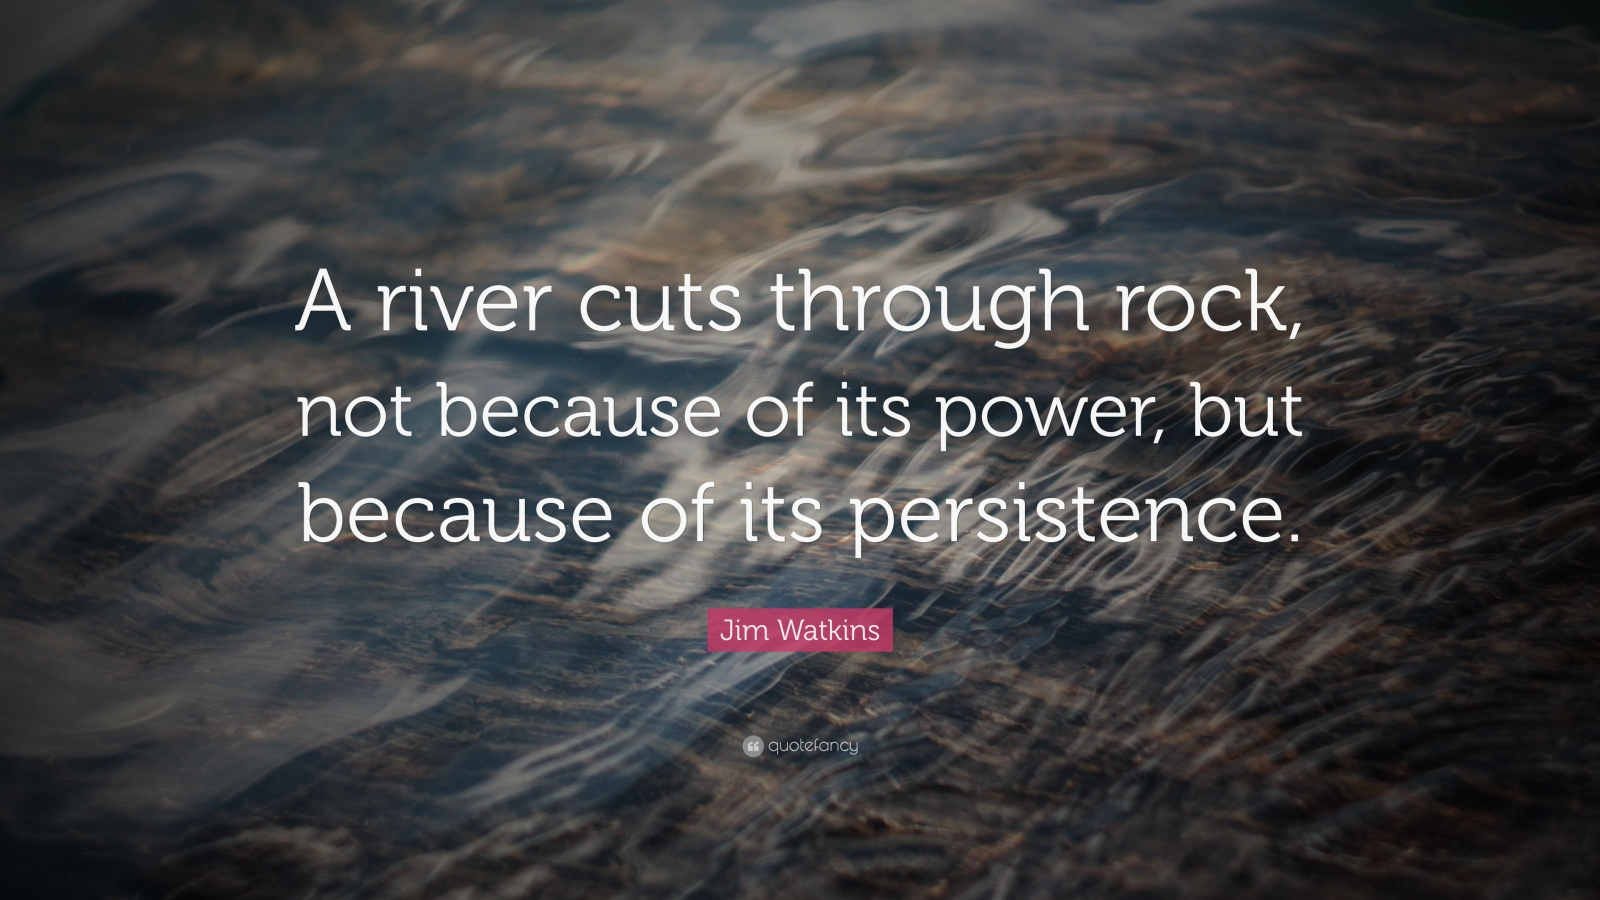 [Image] Be persistent